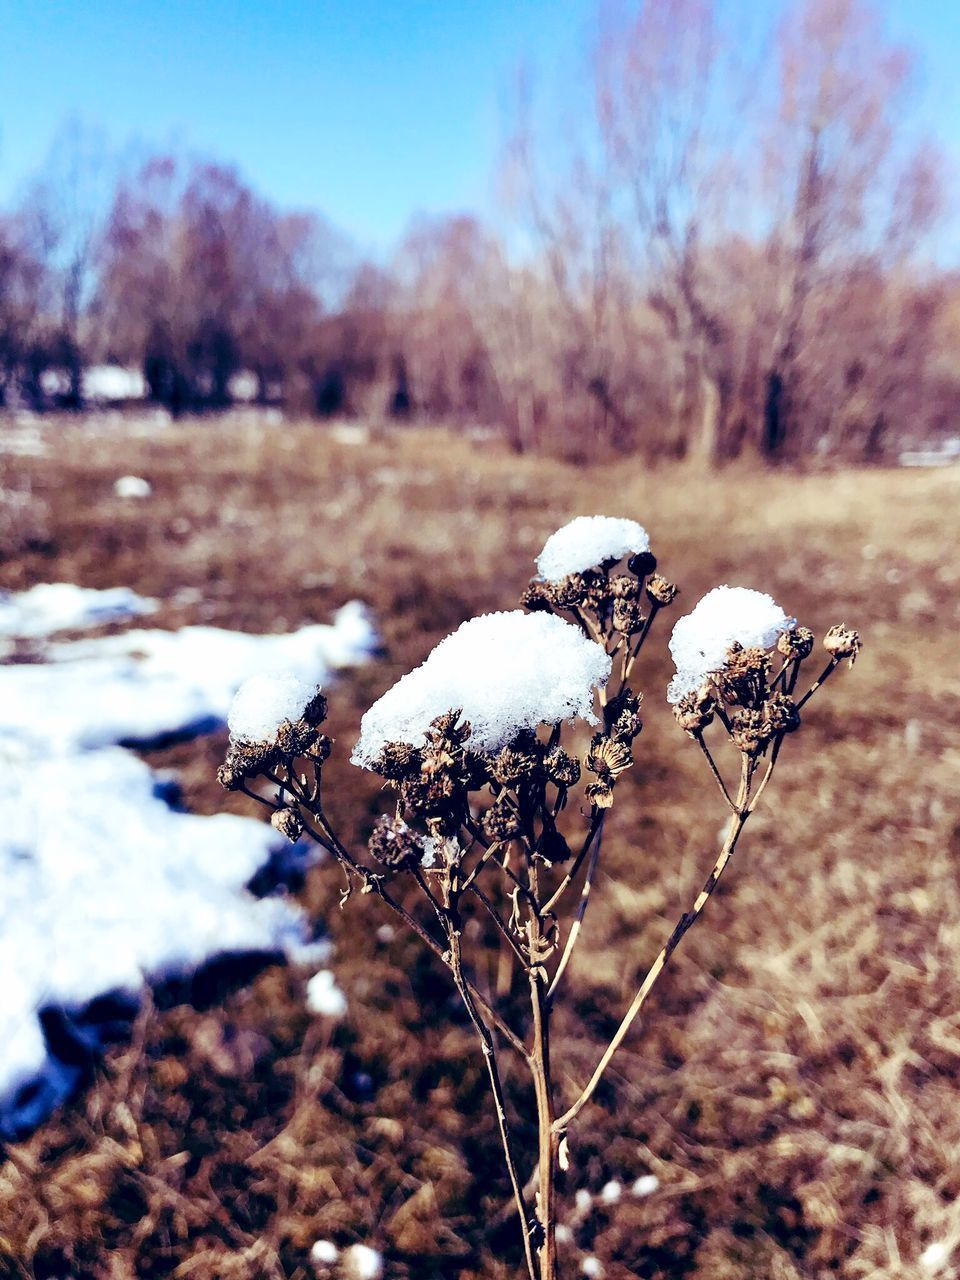 winter, cold temperature, snow, plant, focus on foreground, no people, nature, day, beauty in nature, frozen, field, close-up, land, white color, tranquility, growth, tree, outdoors, covering, cotton plant, dead plant